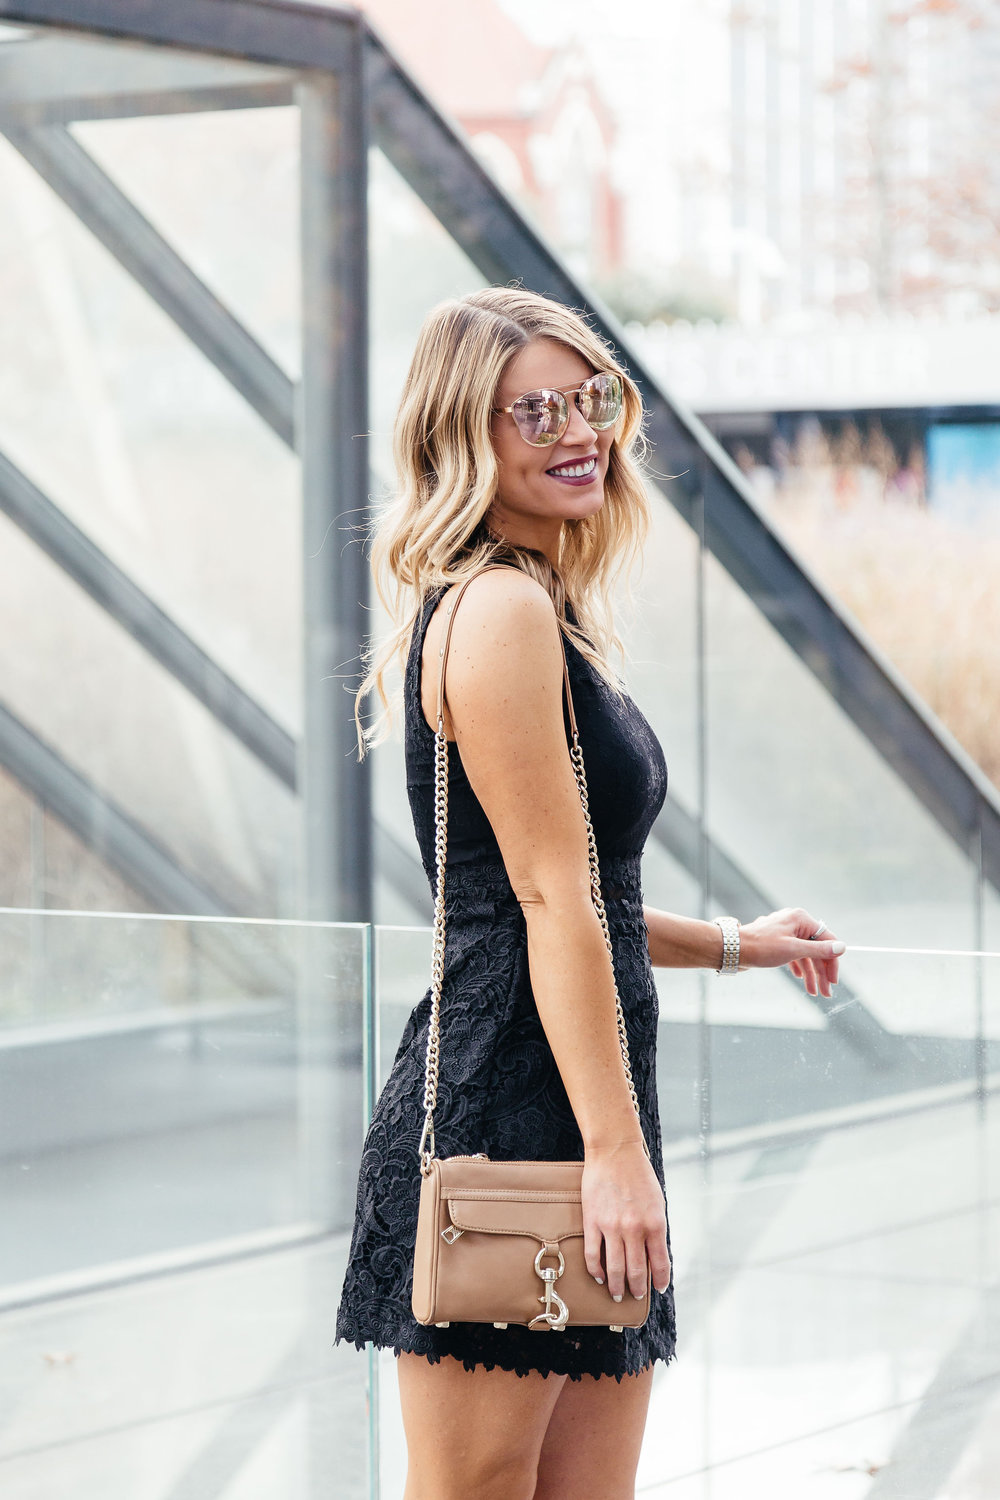 19b78388a New Year's Eve Outfit Ideas — Whit's Whims